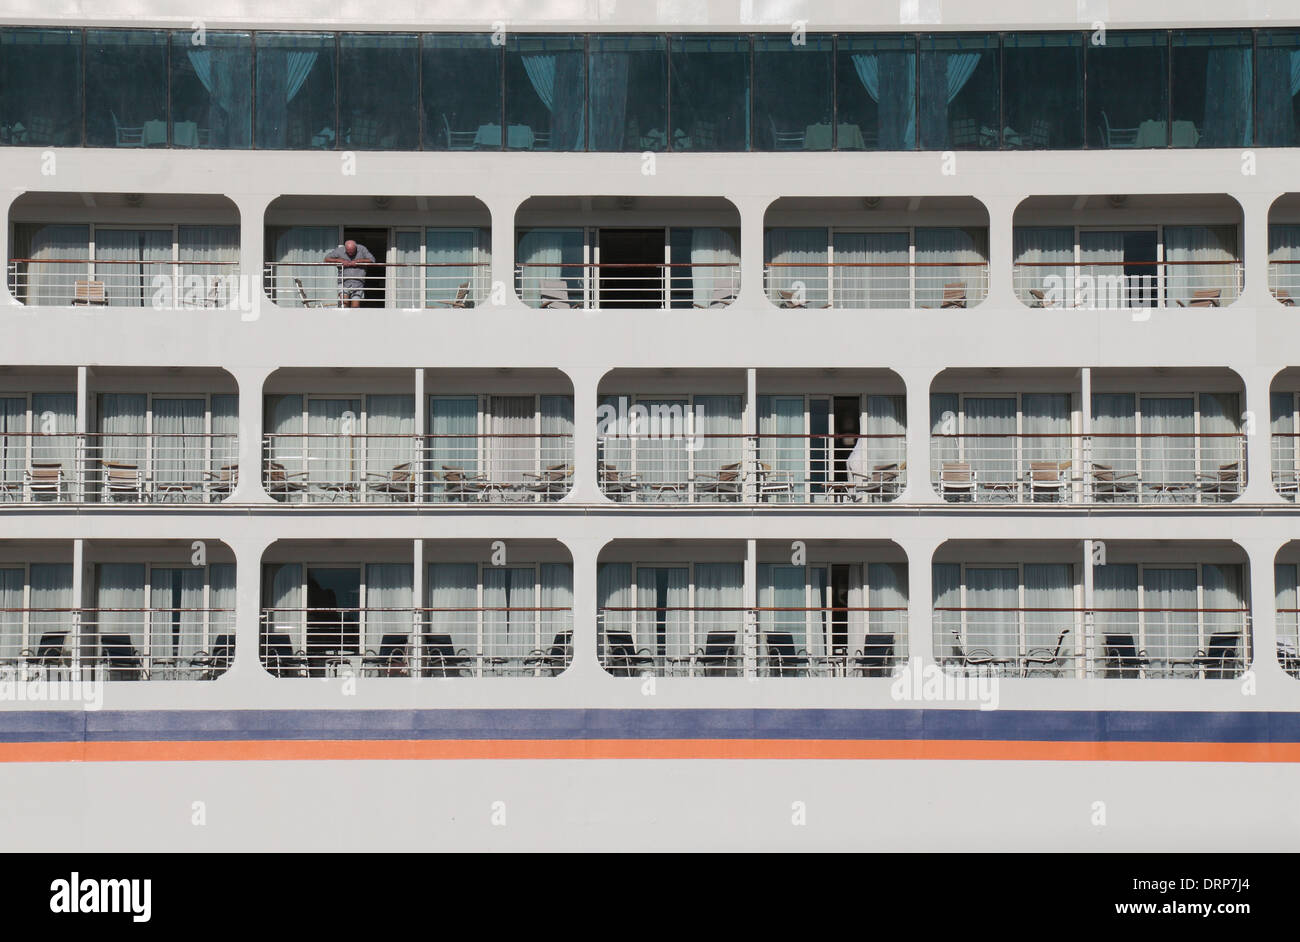 Detail showing three decks of cabin balconies on the Columbus 2 cruise ship in the Port of Cadiz, Cadiz, Portugal. Stock Photo